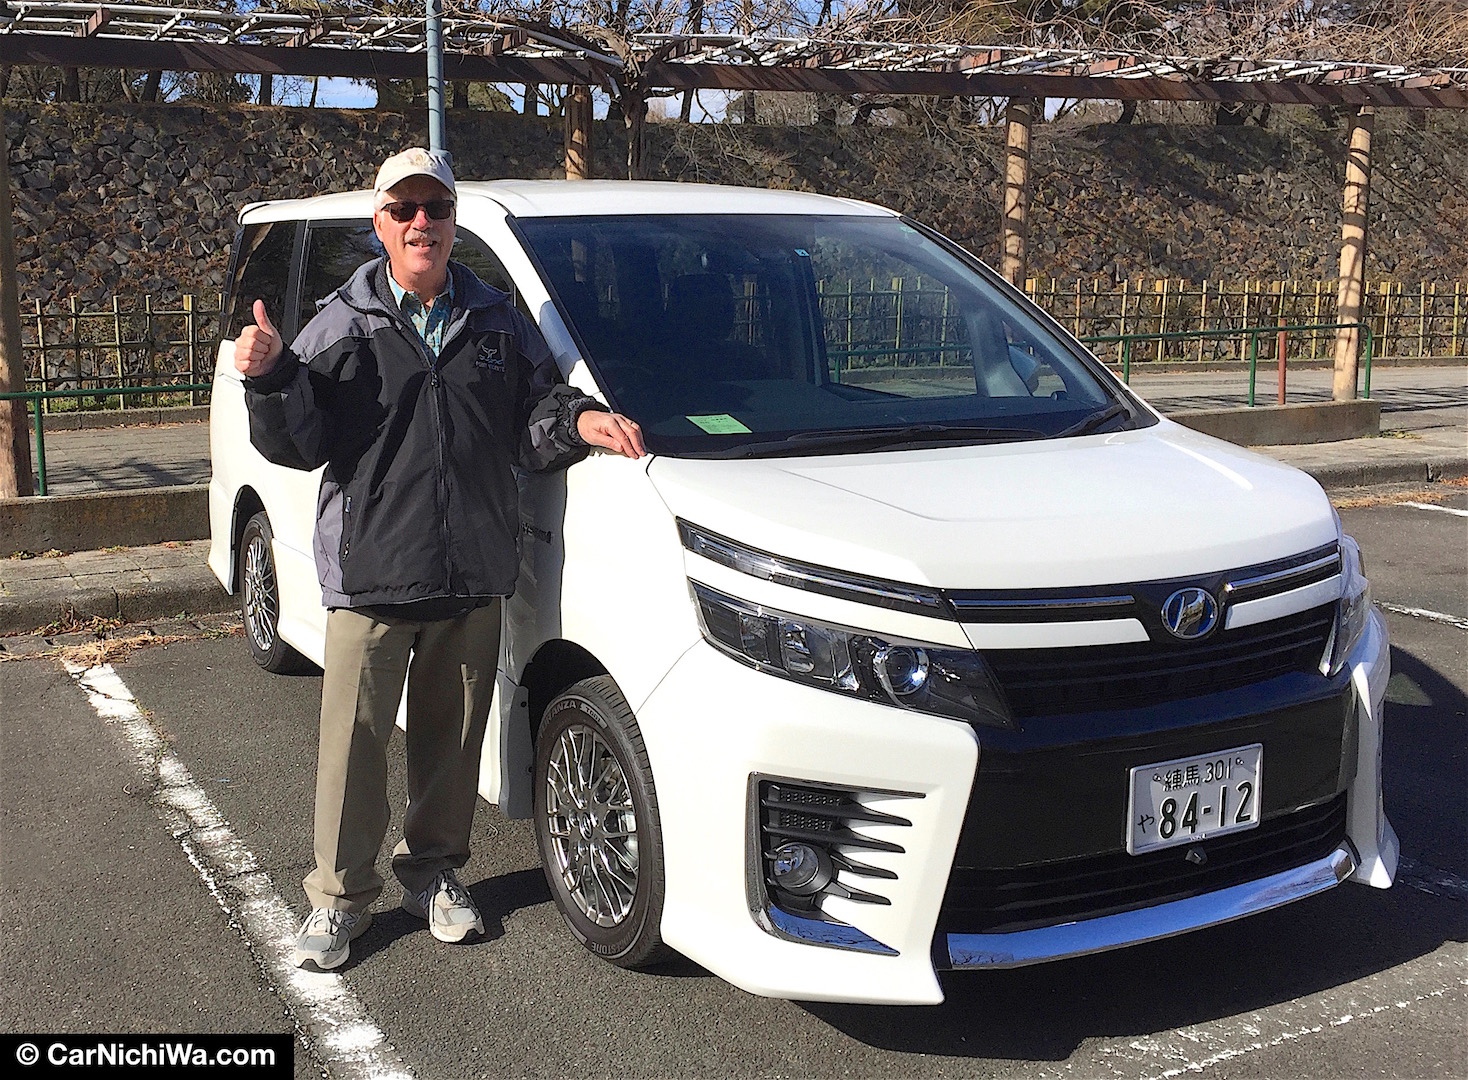 Toyota Voxy Hybrid Review In Nagoya Japan Popular Van With The